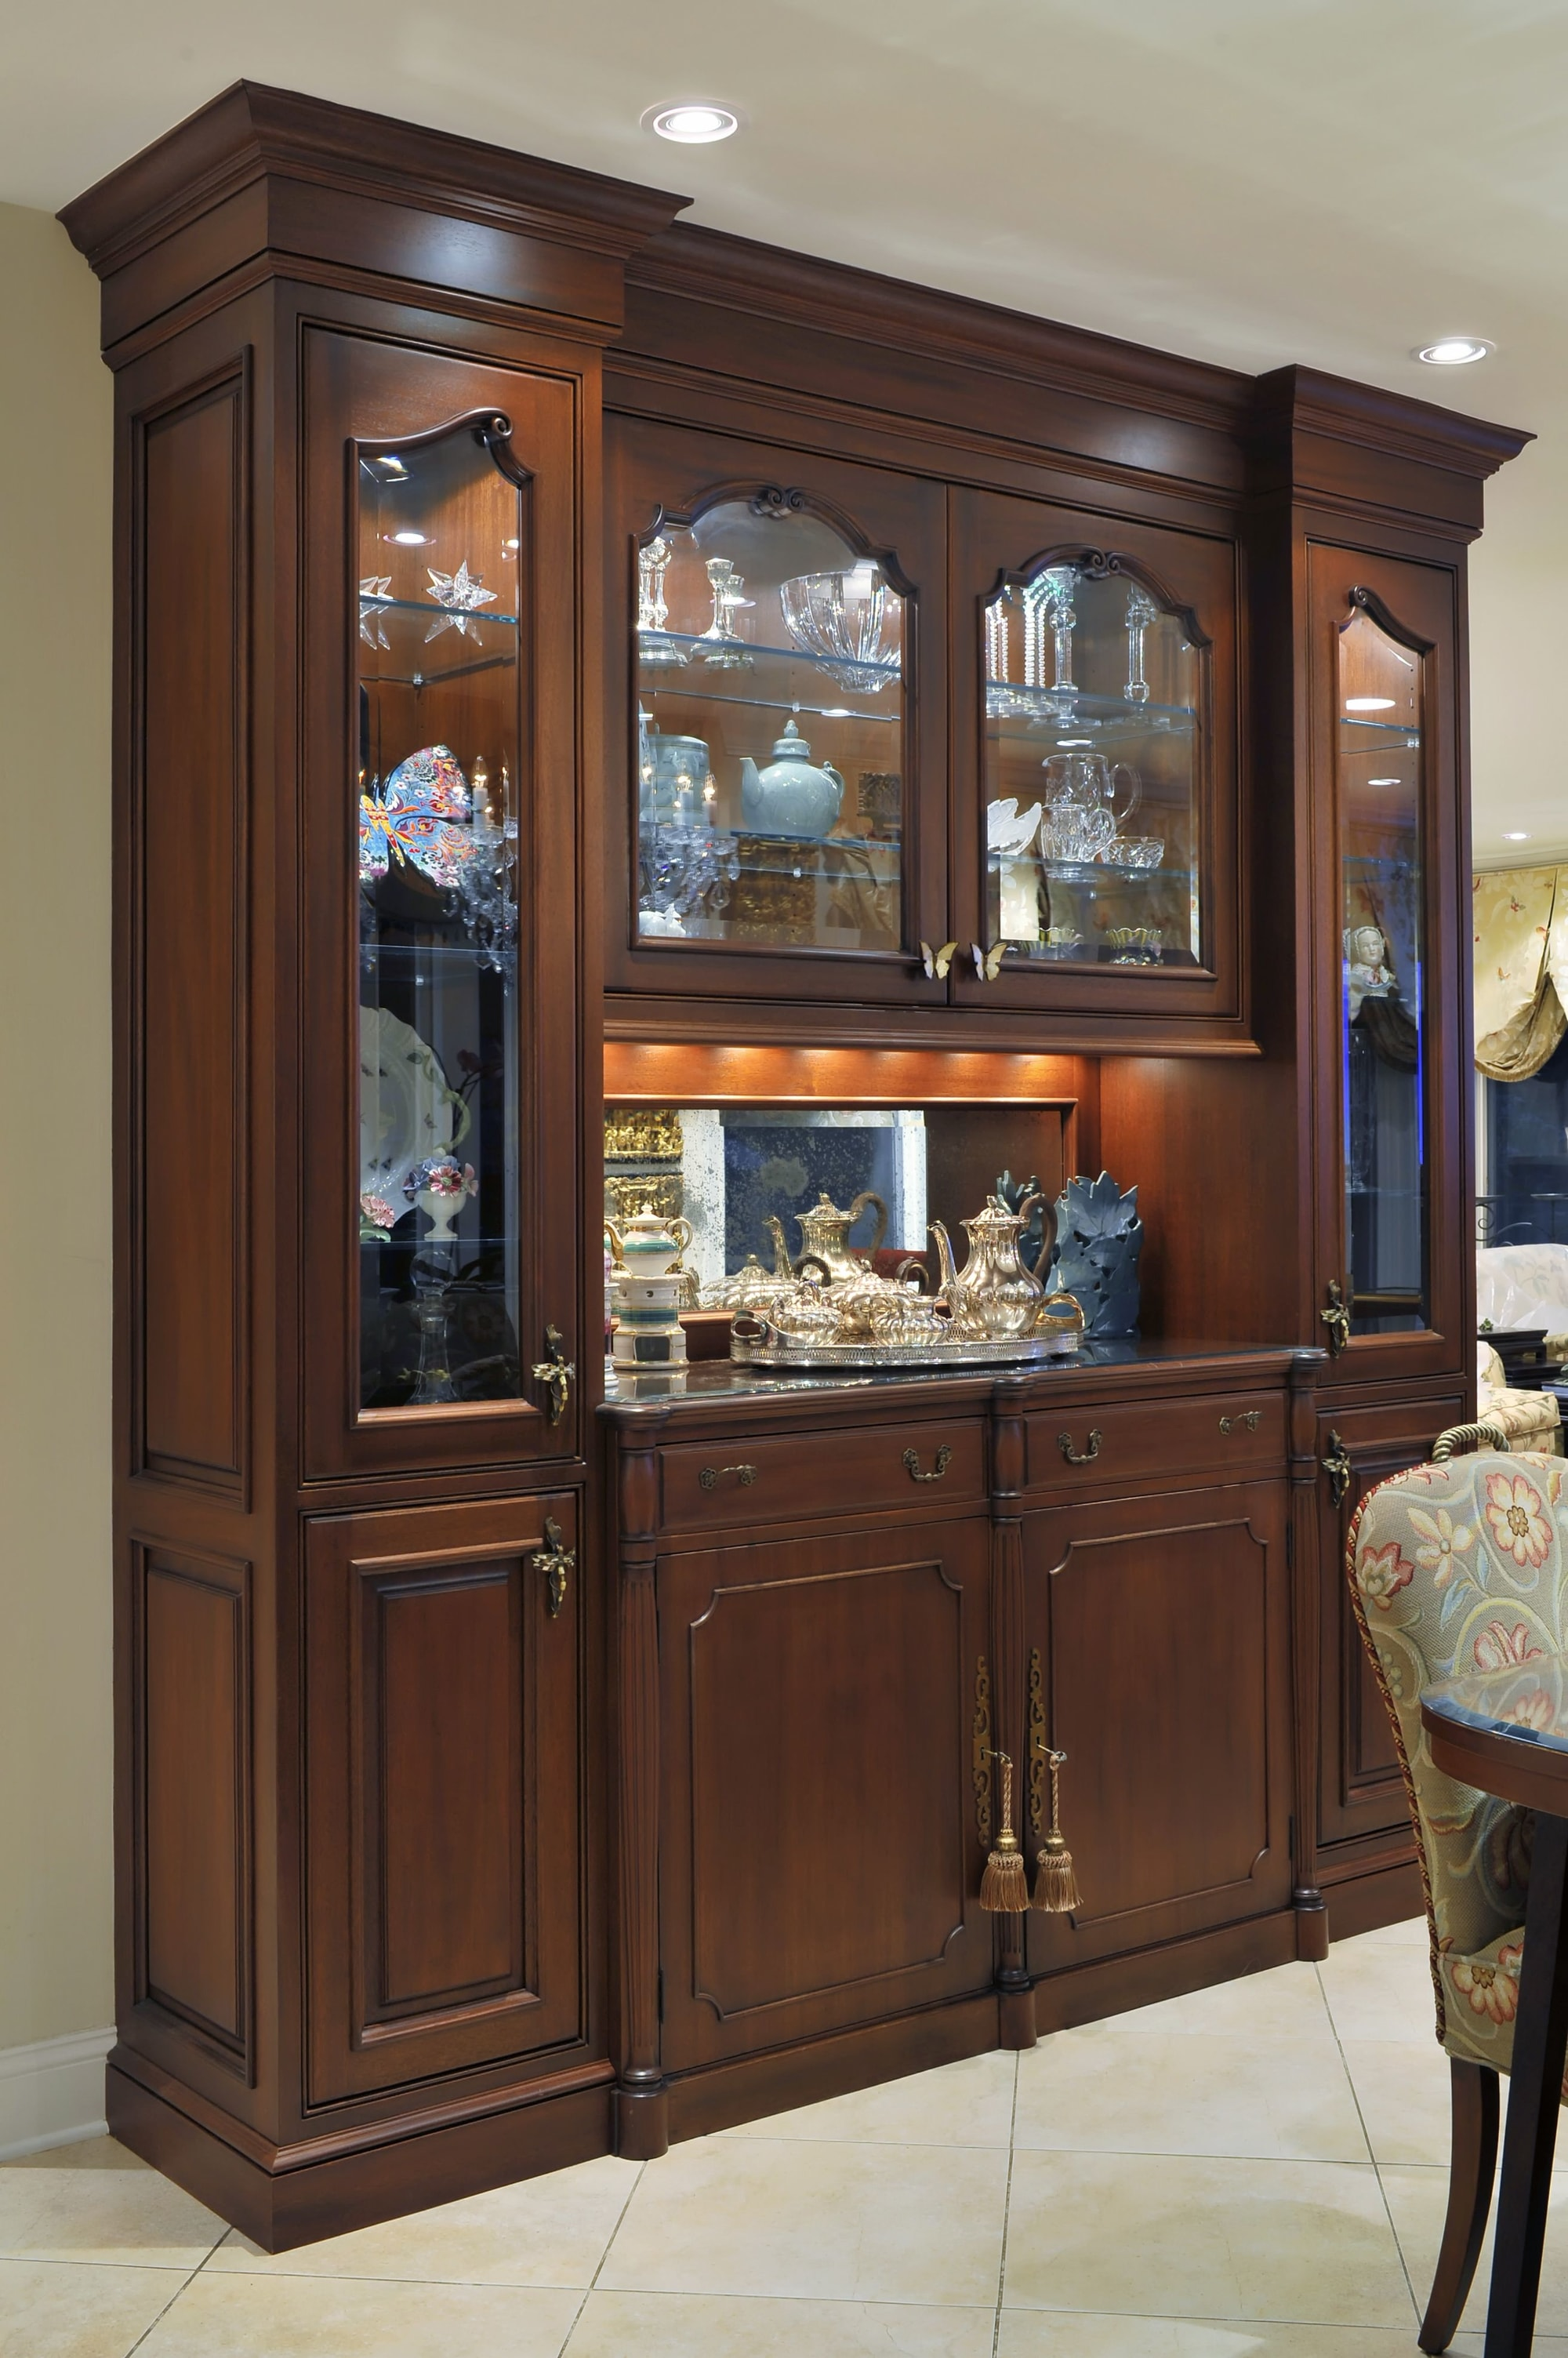 Traditional style kitchen with wooden glass cabinets